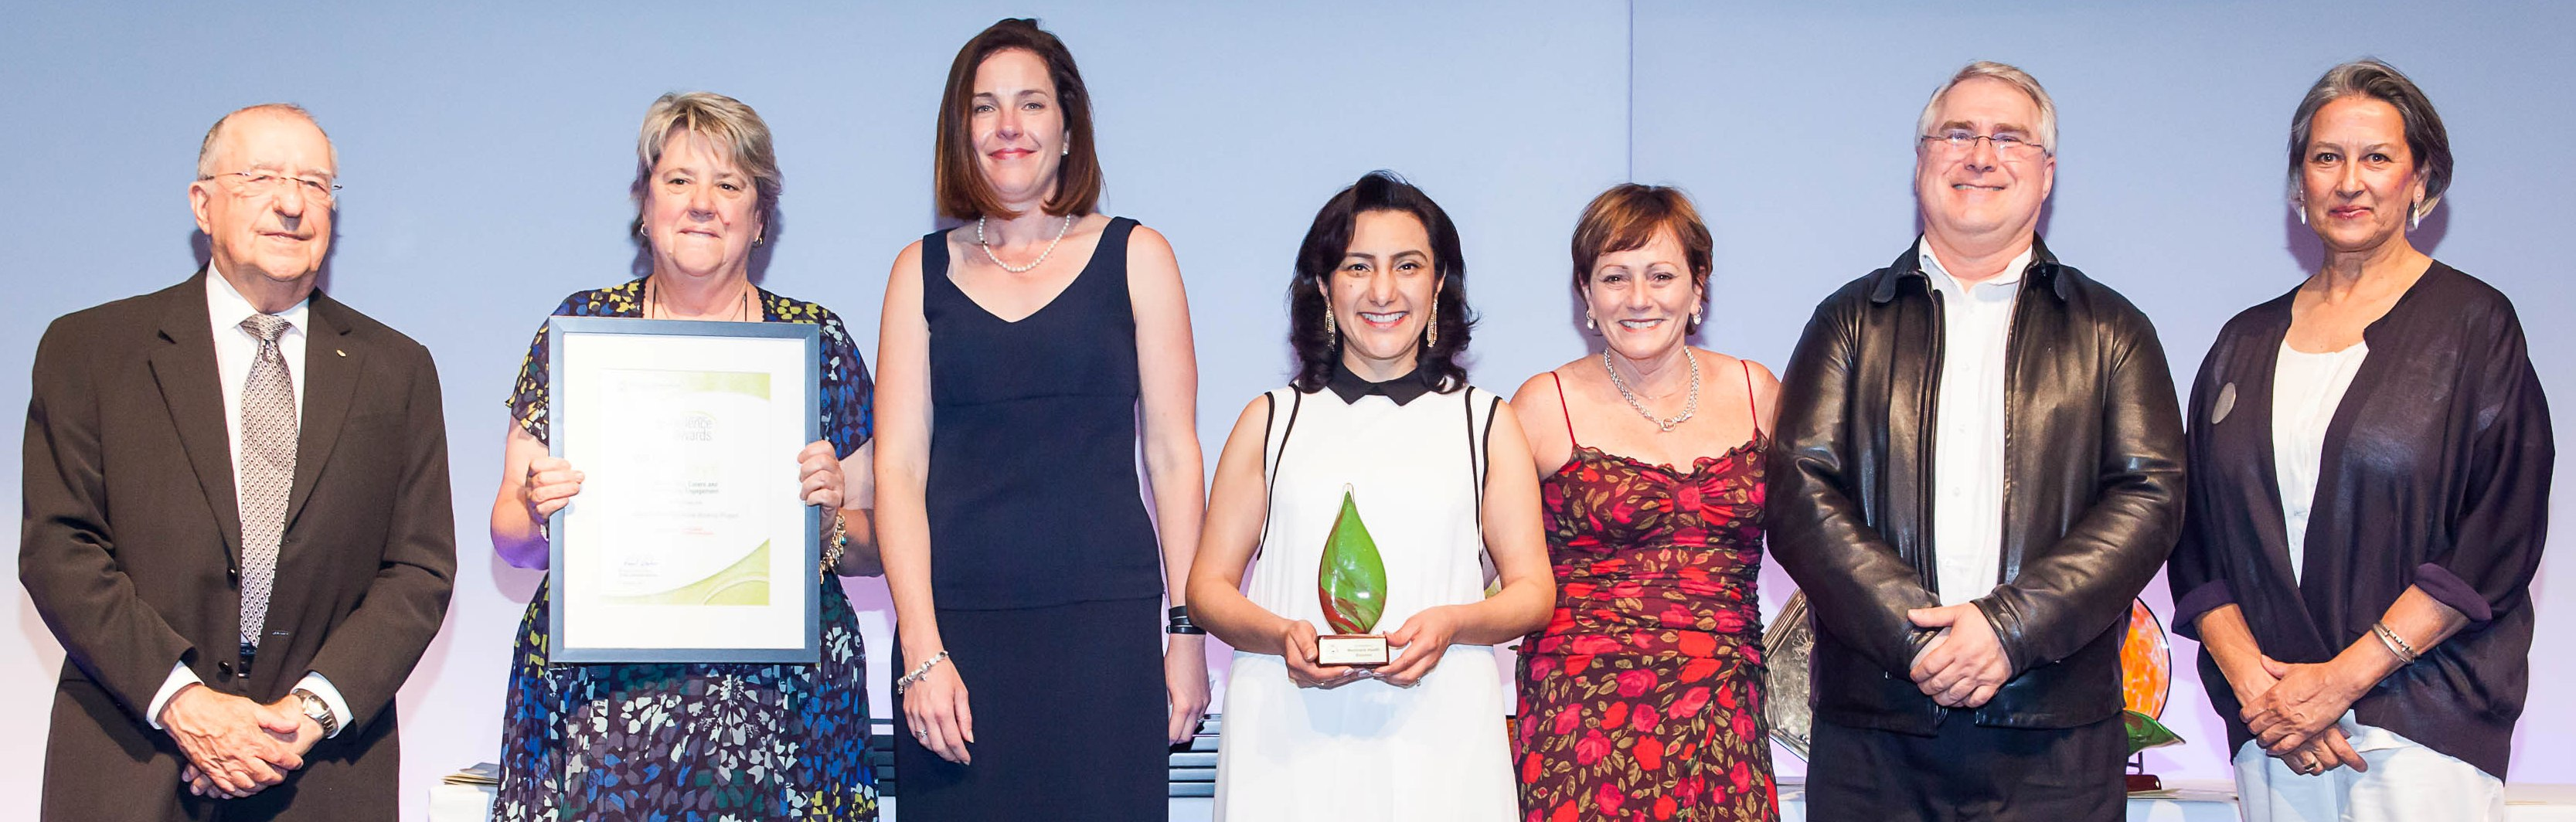 BSWA wins WA Health Award